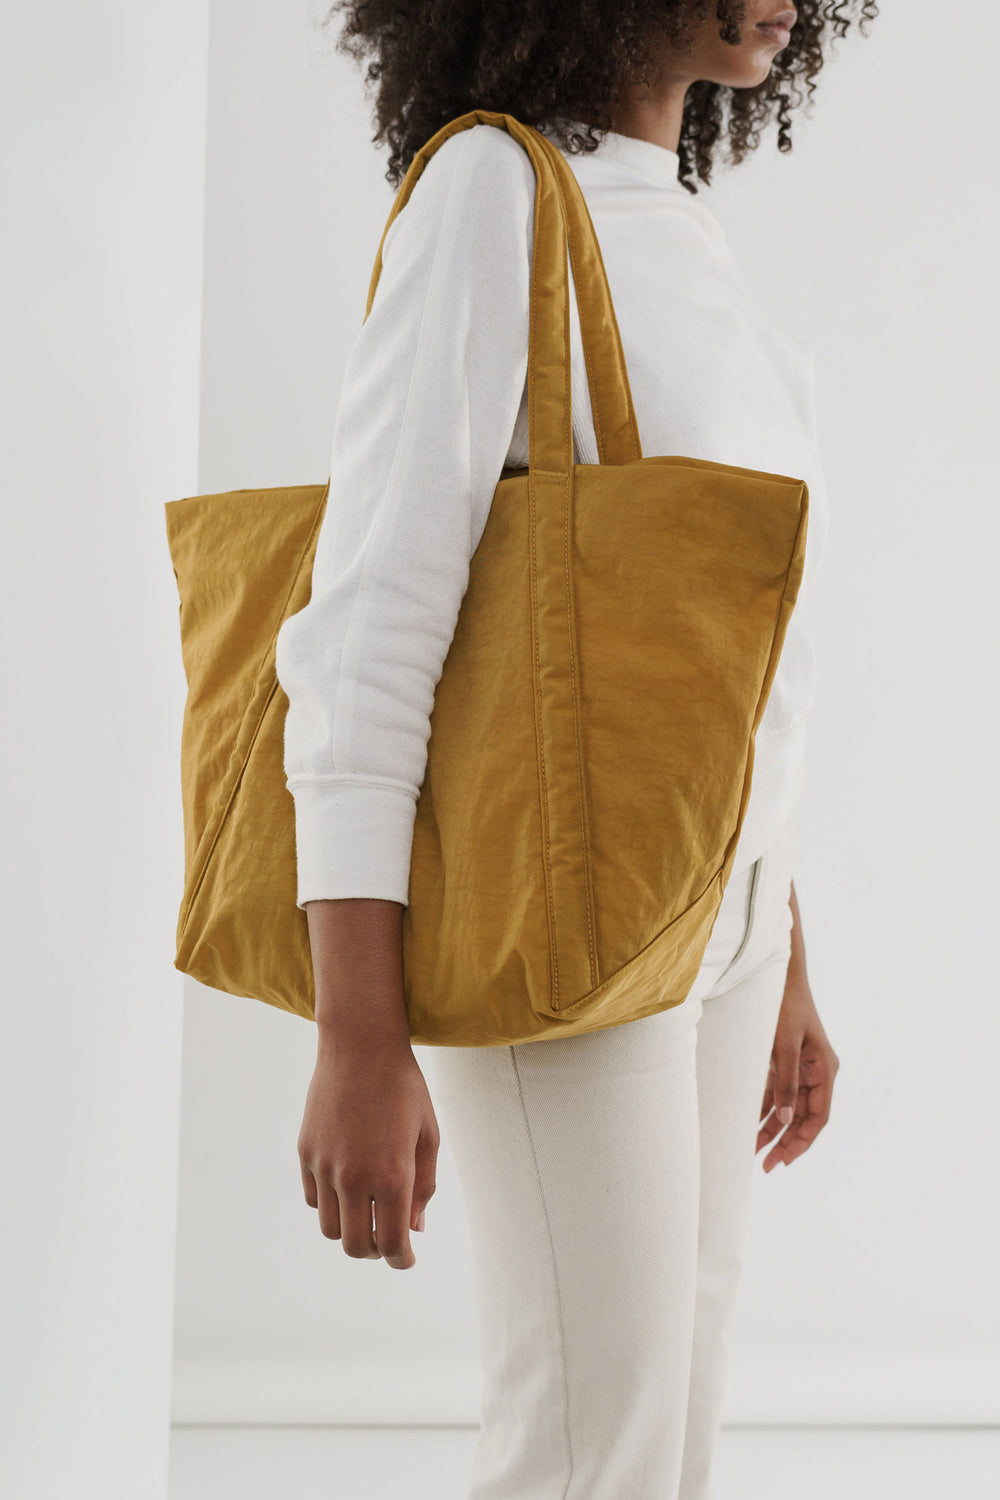 Baggu Cloud Bag- Brown - Whimsy & Row